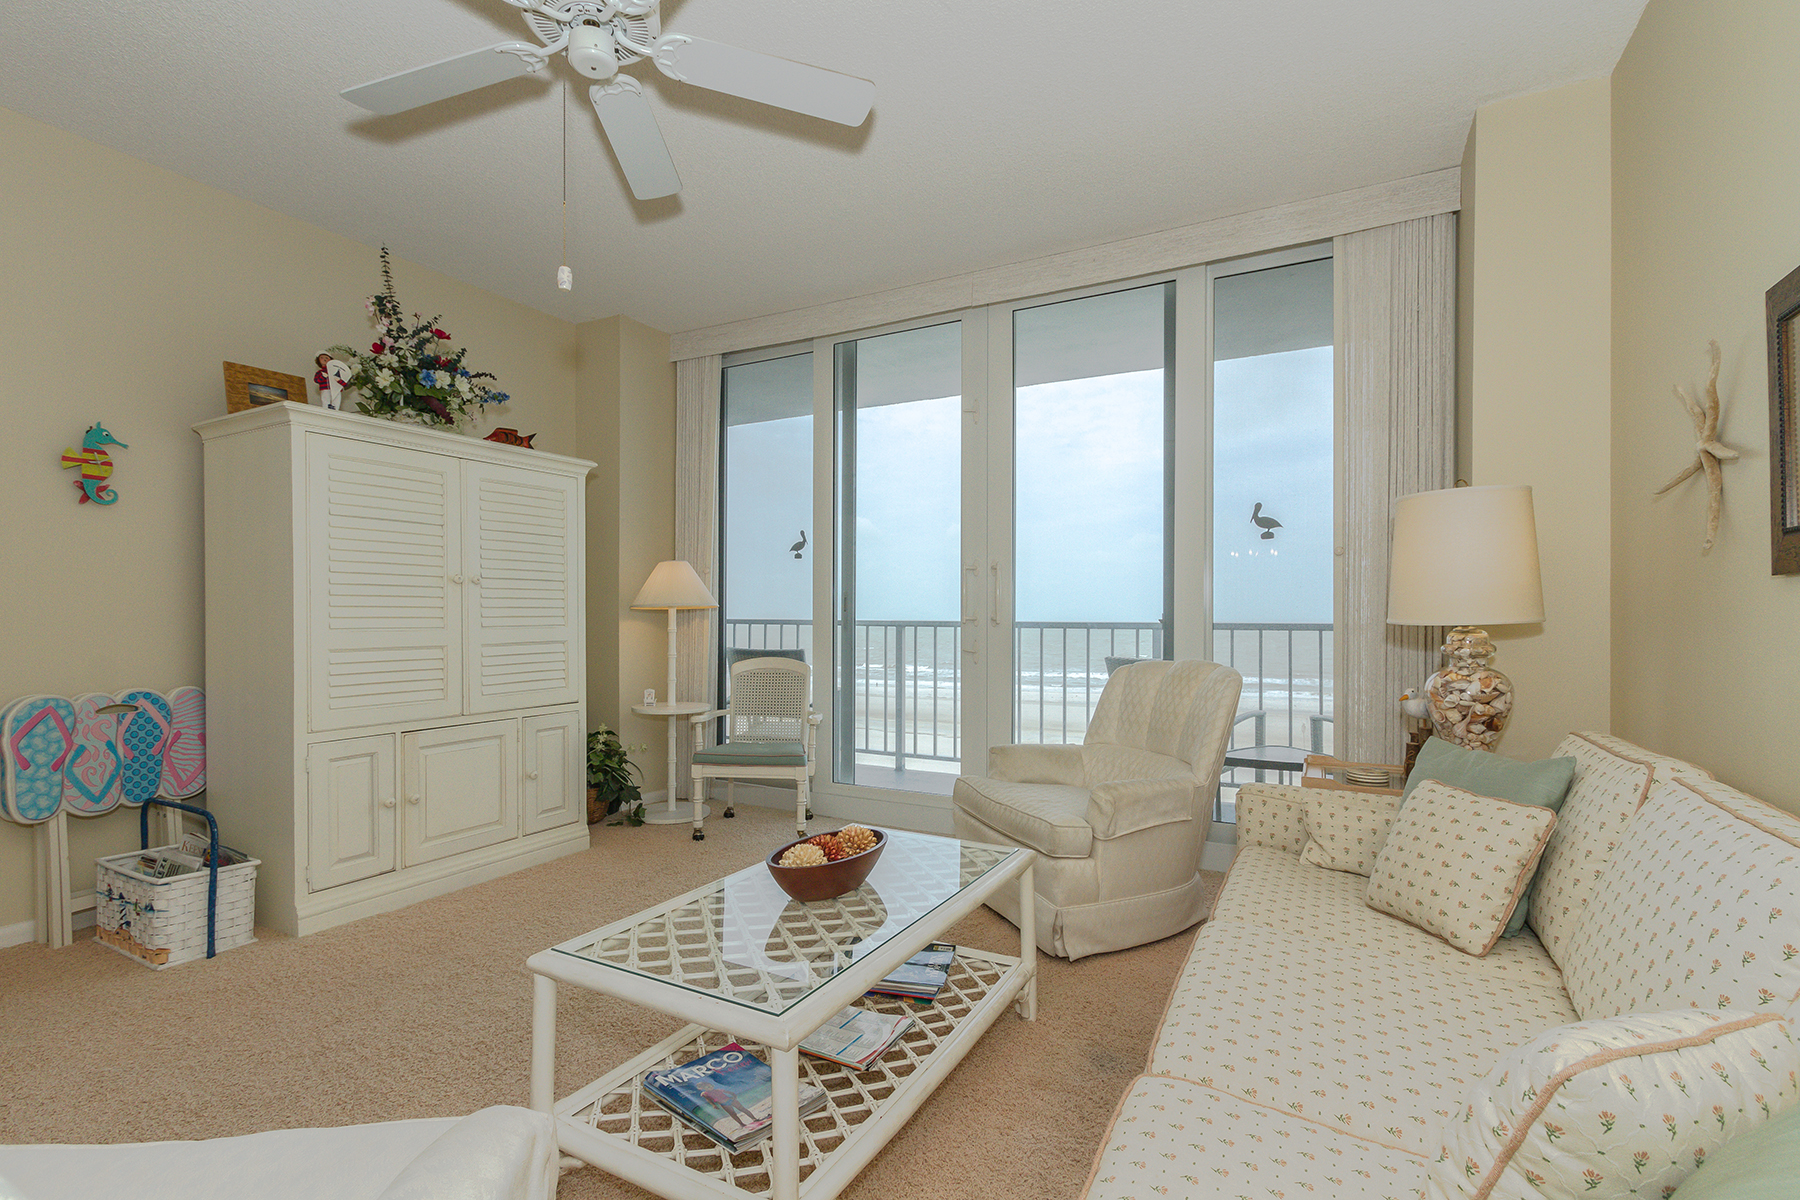 Condominium for Rent at MARCO BEACH - ADMIRALTY HOUSE 140 Seaview Ct S-902 Marco Island, Florida 34145 United States